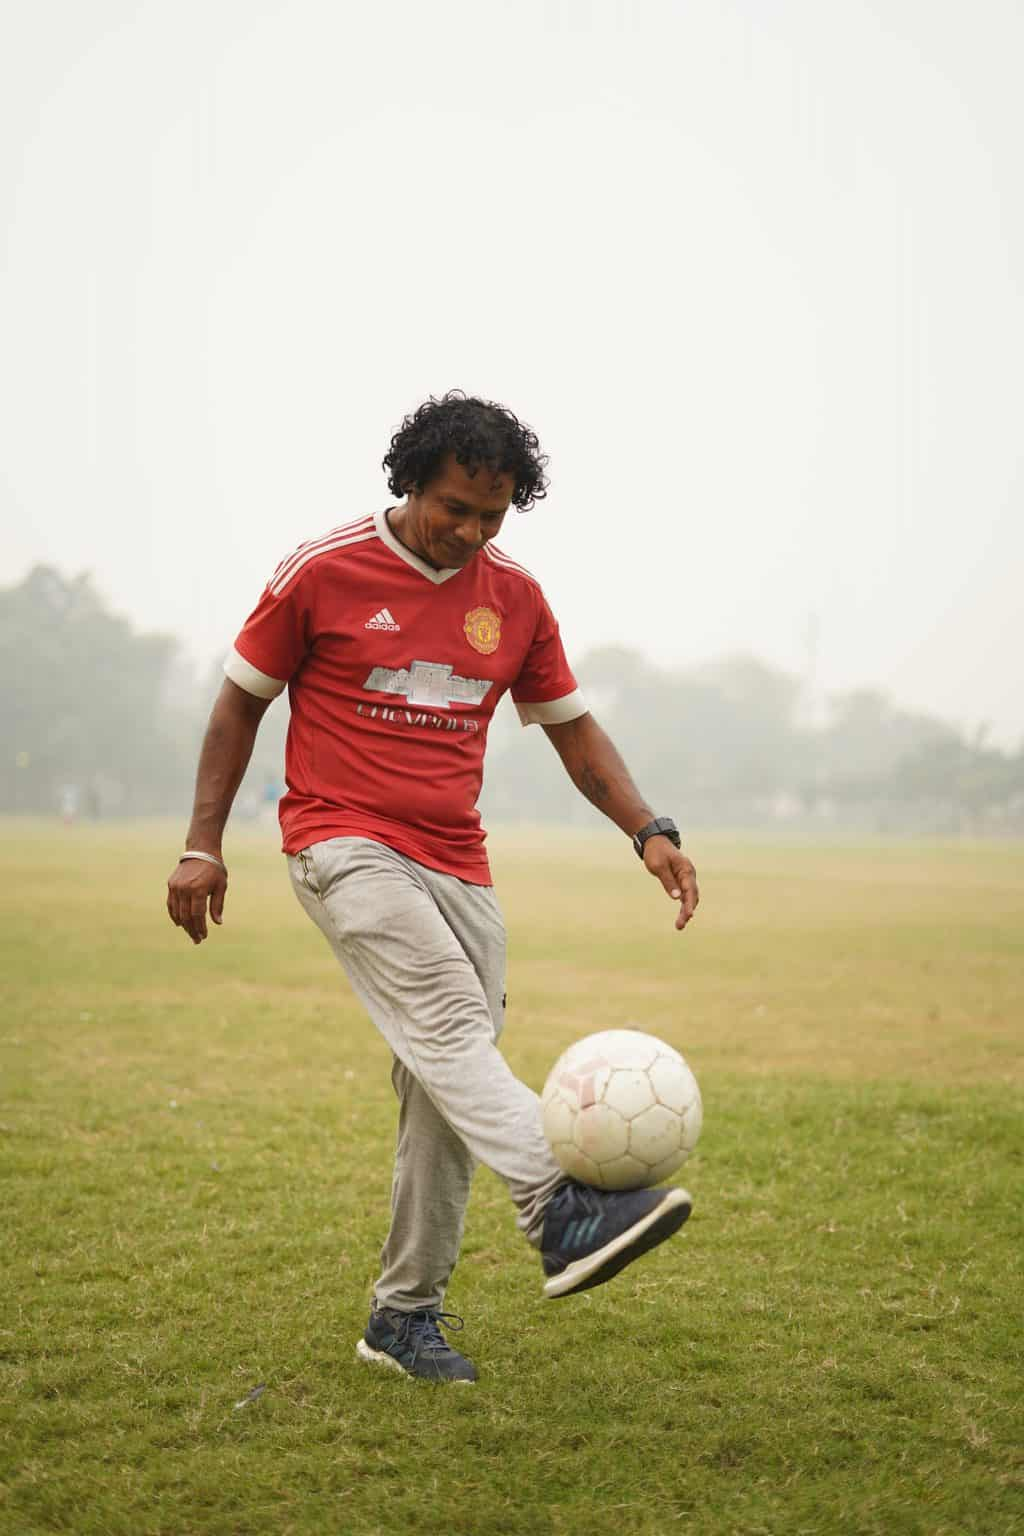 Man practicing soccer in a field